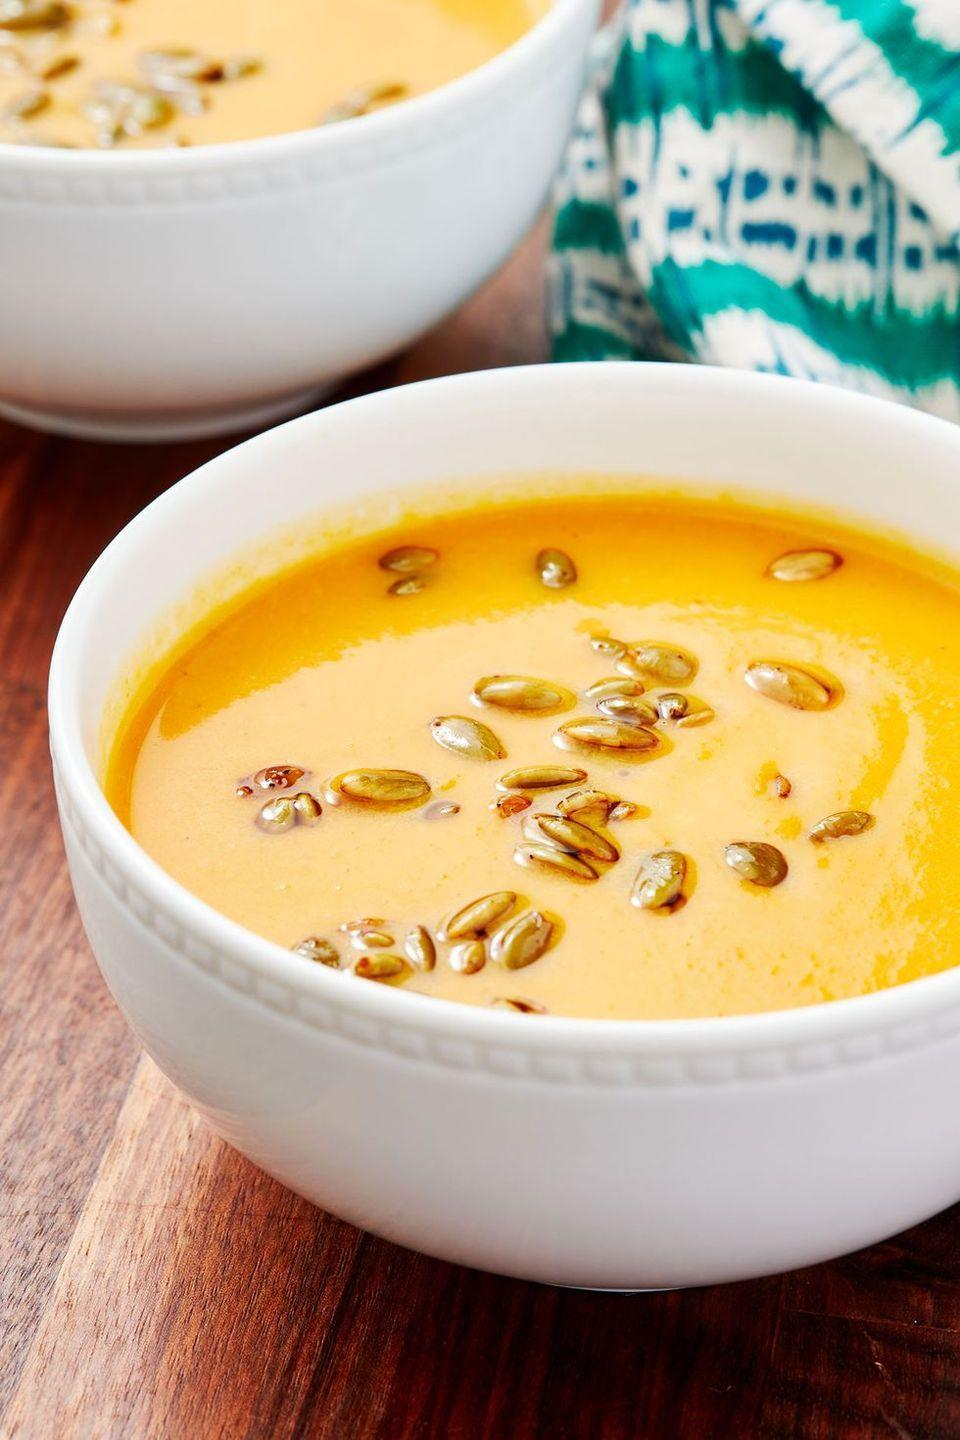 """<p>Squash soup is a go-to in the colder fall months, and this one will not disappoint. </p><p><strong><em>Get the recipe at <a href=""""https://www.delish.com/cooking/recipe-ideas/a28835116/panera-autumn-squash-soup-recipe/"""" rel=""""nofollow noopener"""" target=""""_blank"""" data-ylk=""""slk:Delish"""" class=""""link rapid-noclick-resp"""">Delish</a>. </em></strong></p><p><em><strong>__________________________________________________________</strong></em></p><p><em>Want more Woman's Day?<a href=""""https://subscribe.hearstmags.com/subscribe/womansday/253396?source=wdy_edit_article"""" rel=""""nofollow noopener"""" target=""""_blank"""" data-ylk=""""slk:Subscribe to Woman's Day"""" class=""""link rapid-noclick-resp"""">Subscribe to Woman's Day</a> today and get <strong>73% off your first 12 issues</strong>. And while you're at it, <a href=""""https://link.womansday.com/join/3o9/wdy-newsletter"""" rel=""""nofollow noopener"""" target=""""_blank"""" data-ylk=""""slk:sign up for our FREE newsletter"""" class=""""link rapid-noclick-resp"""">sign up for our FREE newsletter</a> for even more of the Woman's Day content you want.</em><br></p>"""